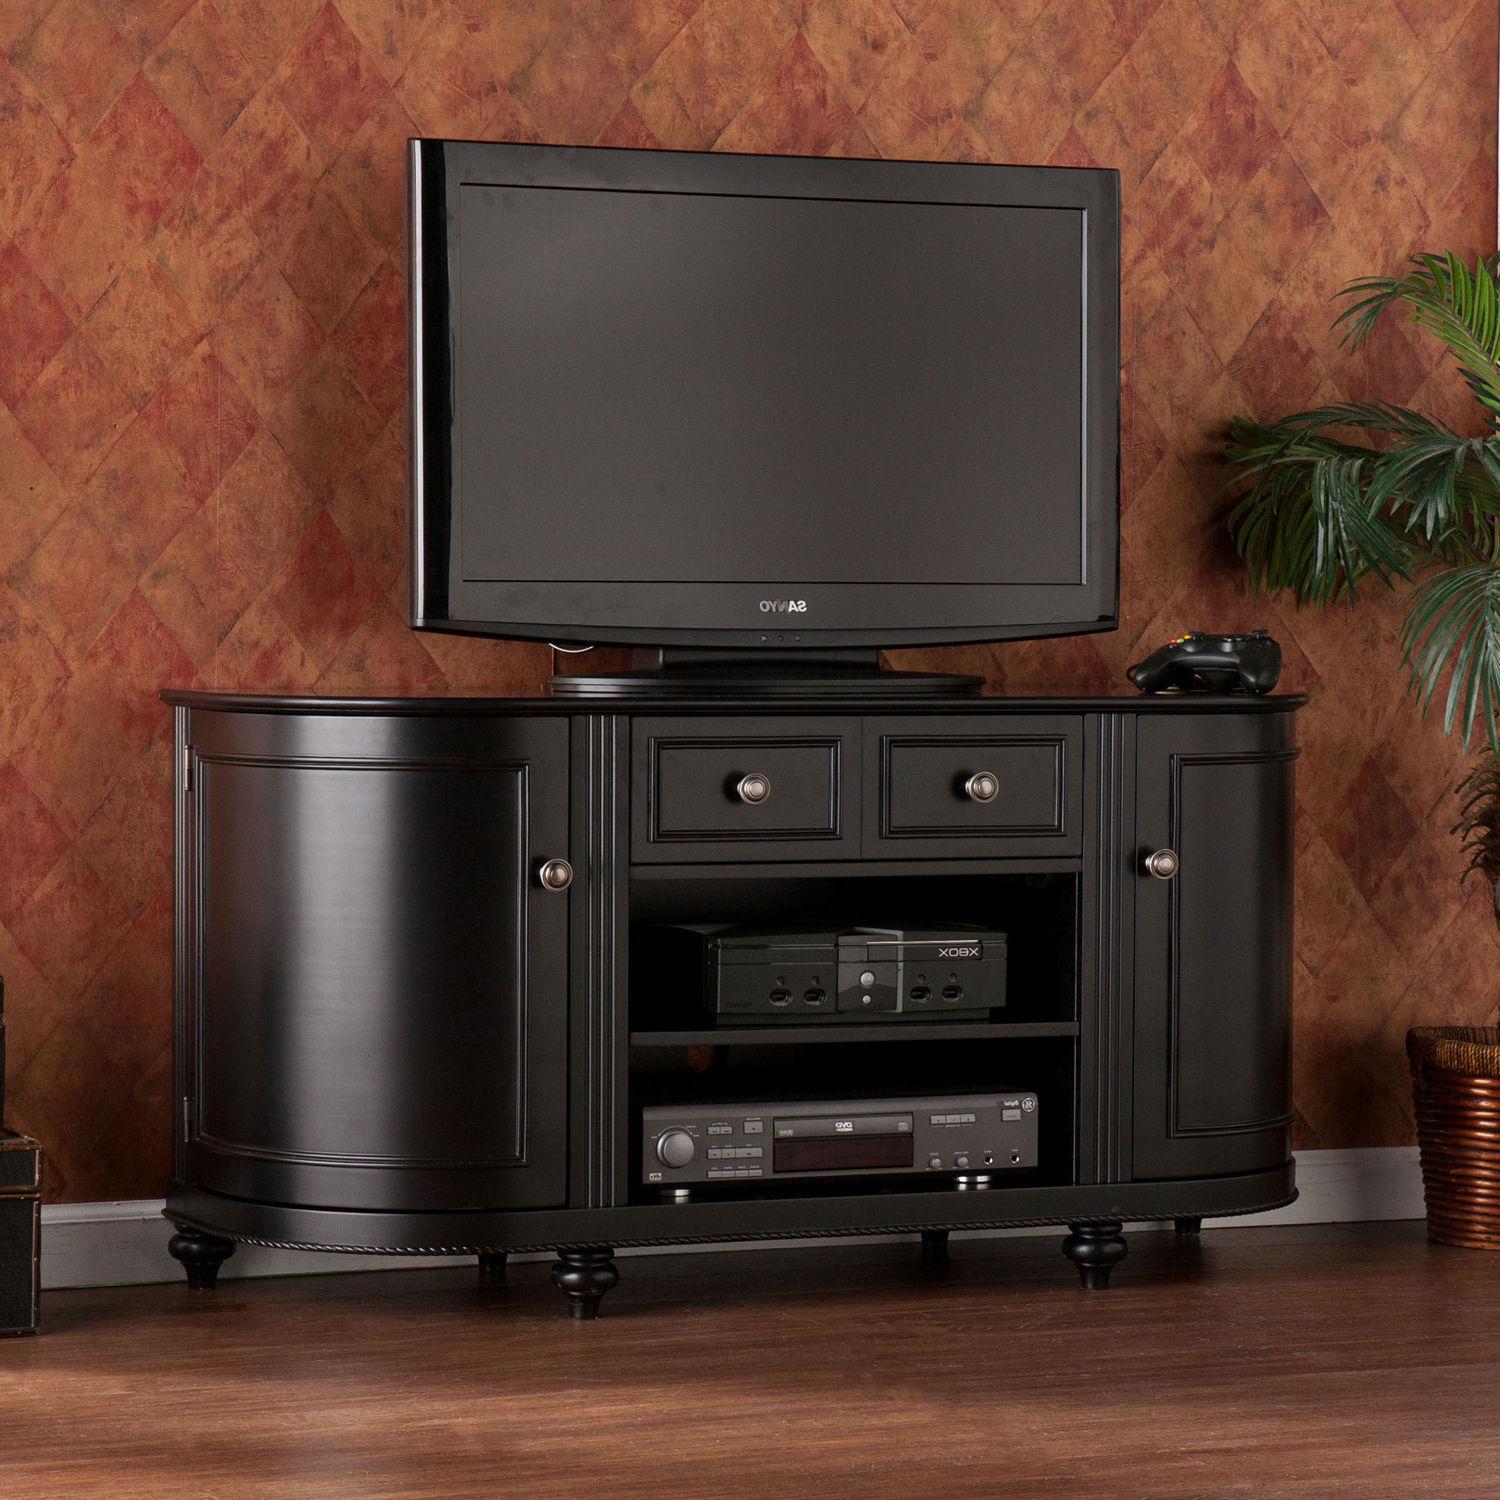 Southern Enterprises Dandridge Black Tv Stand Ms8341 | Bellacor For Rowan 45 Inch Tv Stands (Gallery 4 of 20)